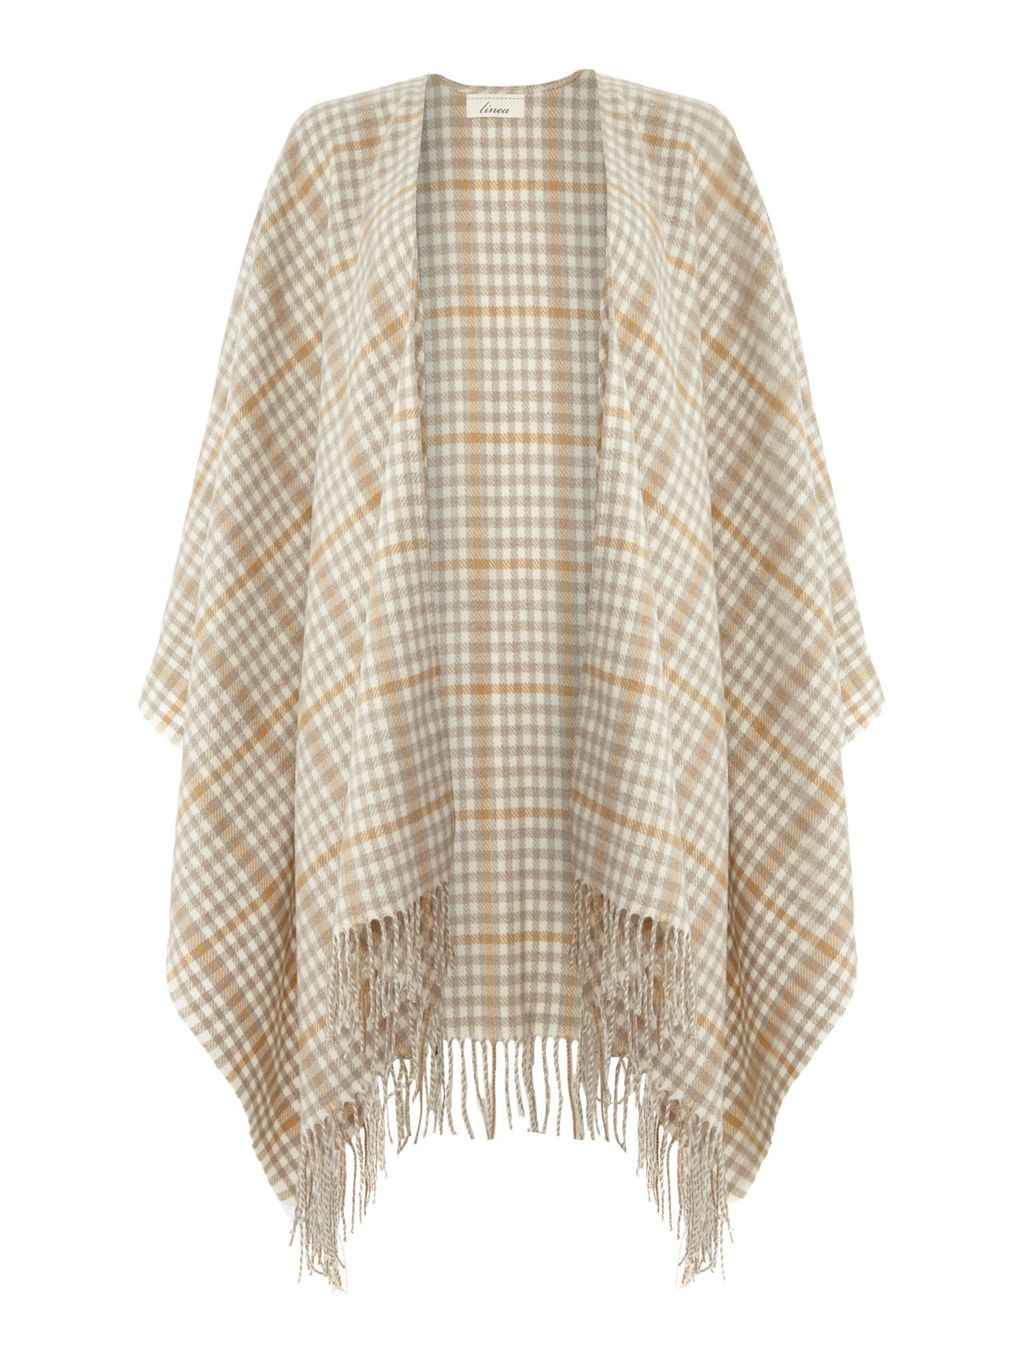 Dogtooth Woven Check Wrap, Neutral - pattern: checked/gingham; neckline: waterfall neck; length: below the bottom; secondary colour: ivory/cream; predominant colour: camel; occasions: casual, creative work; style: cape style; fibres: cotton - mix; fit: loose; hip detail: added detail/embellishment at hip; sleeve length: long sleeve; texture group: knits/crochet; pattern type: knitted - other; pattern size: standard; embellishment: fringing; sleeve style: cape/poncho sleeve; multicoloured: multicoloured; season: a/w 2015; wardrobe: highlight